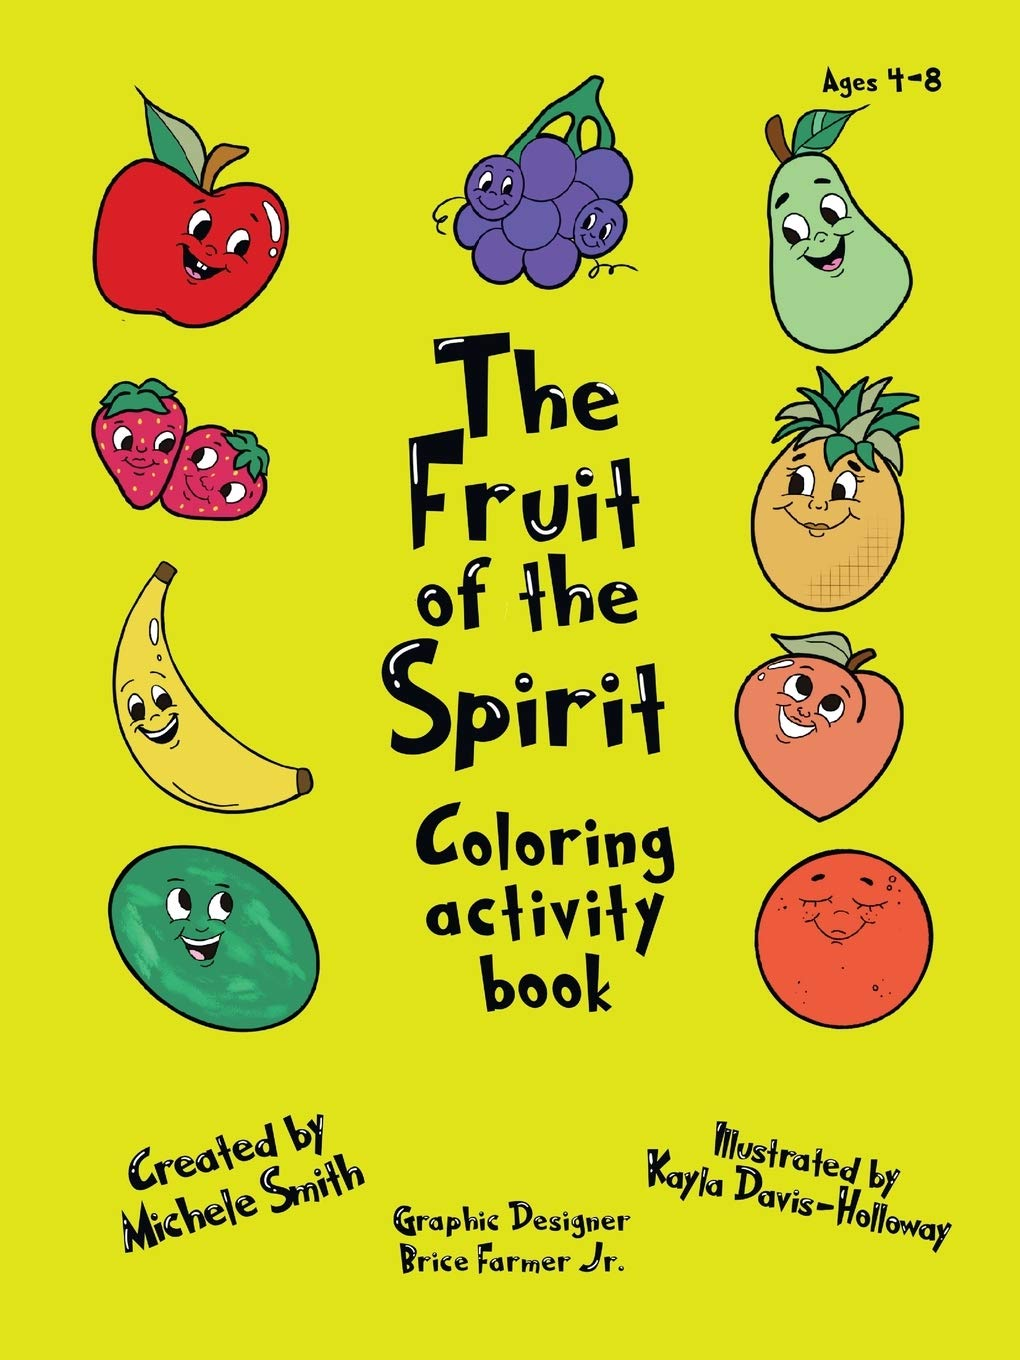 Buy The Fruit Of The Spirit Coloring Activity Book Book Online At Low Prices In India The Fruit Of The Spirit Coloring Activity Book Reviews Ratings Amazon In